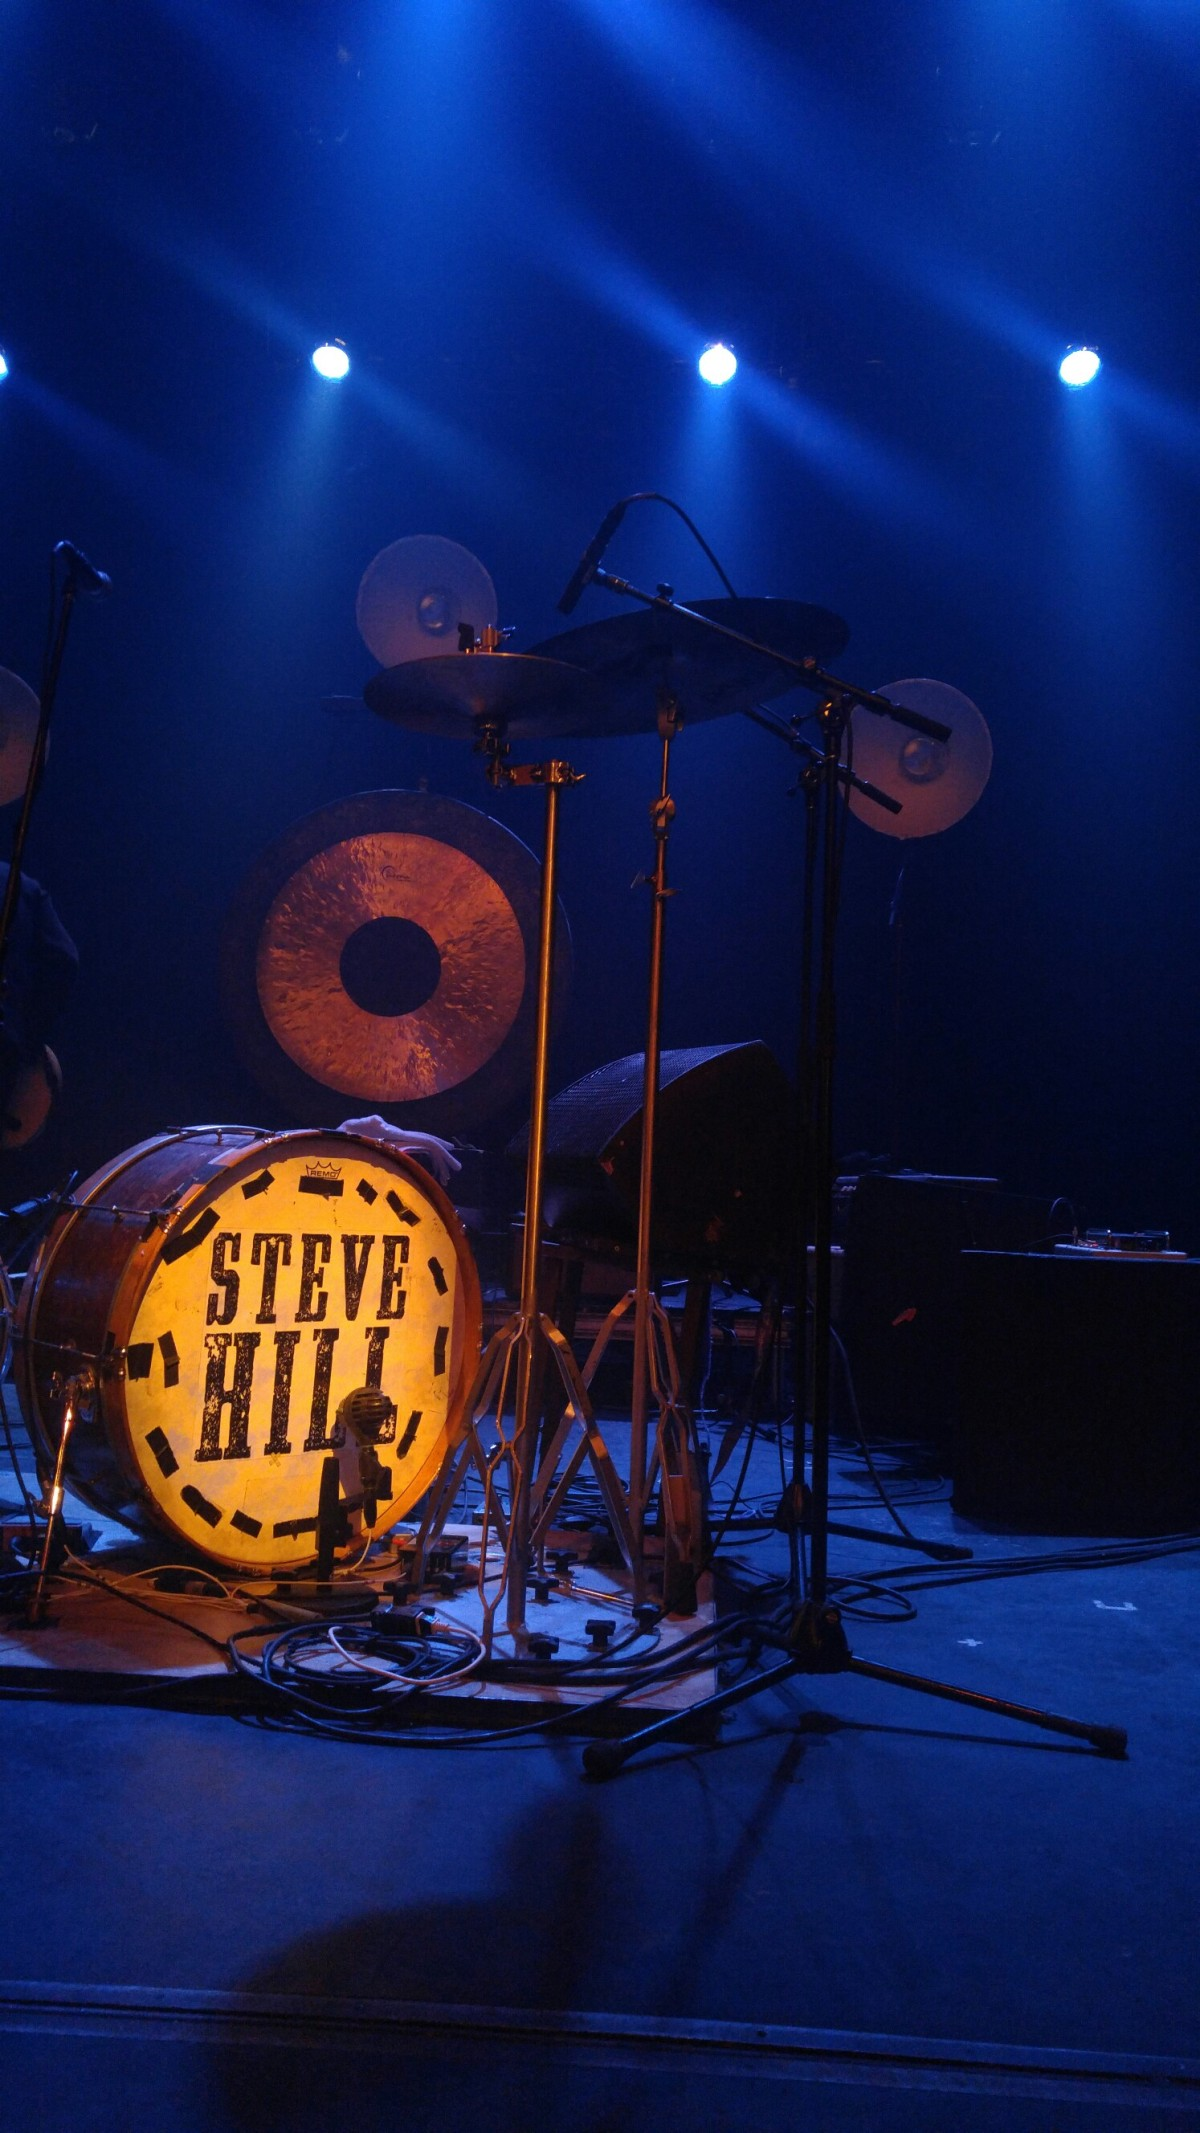 Steve Hill Concert Review – Club Soda